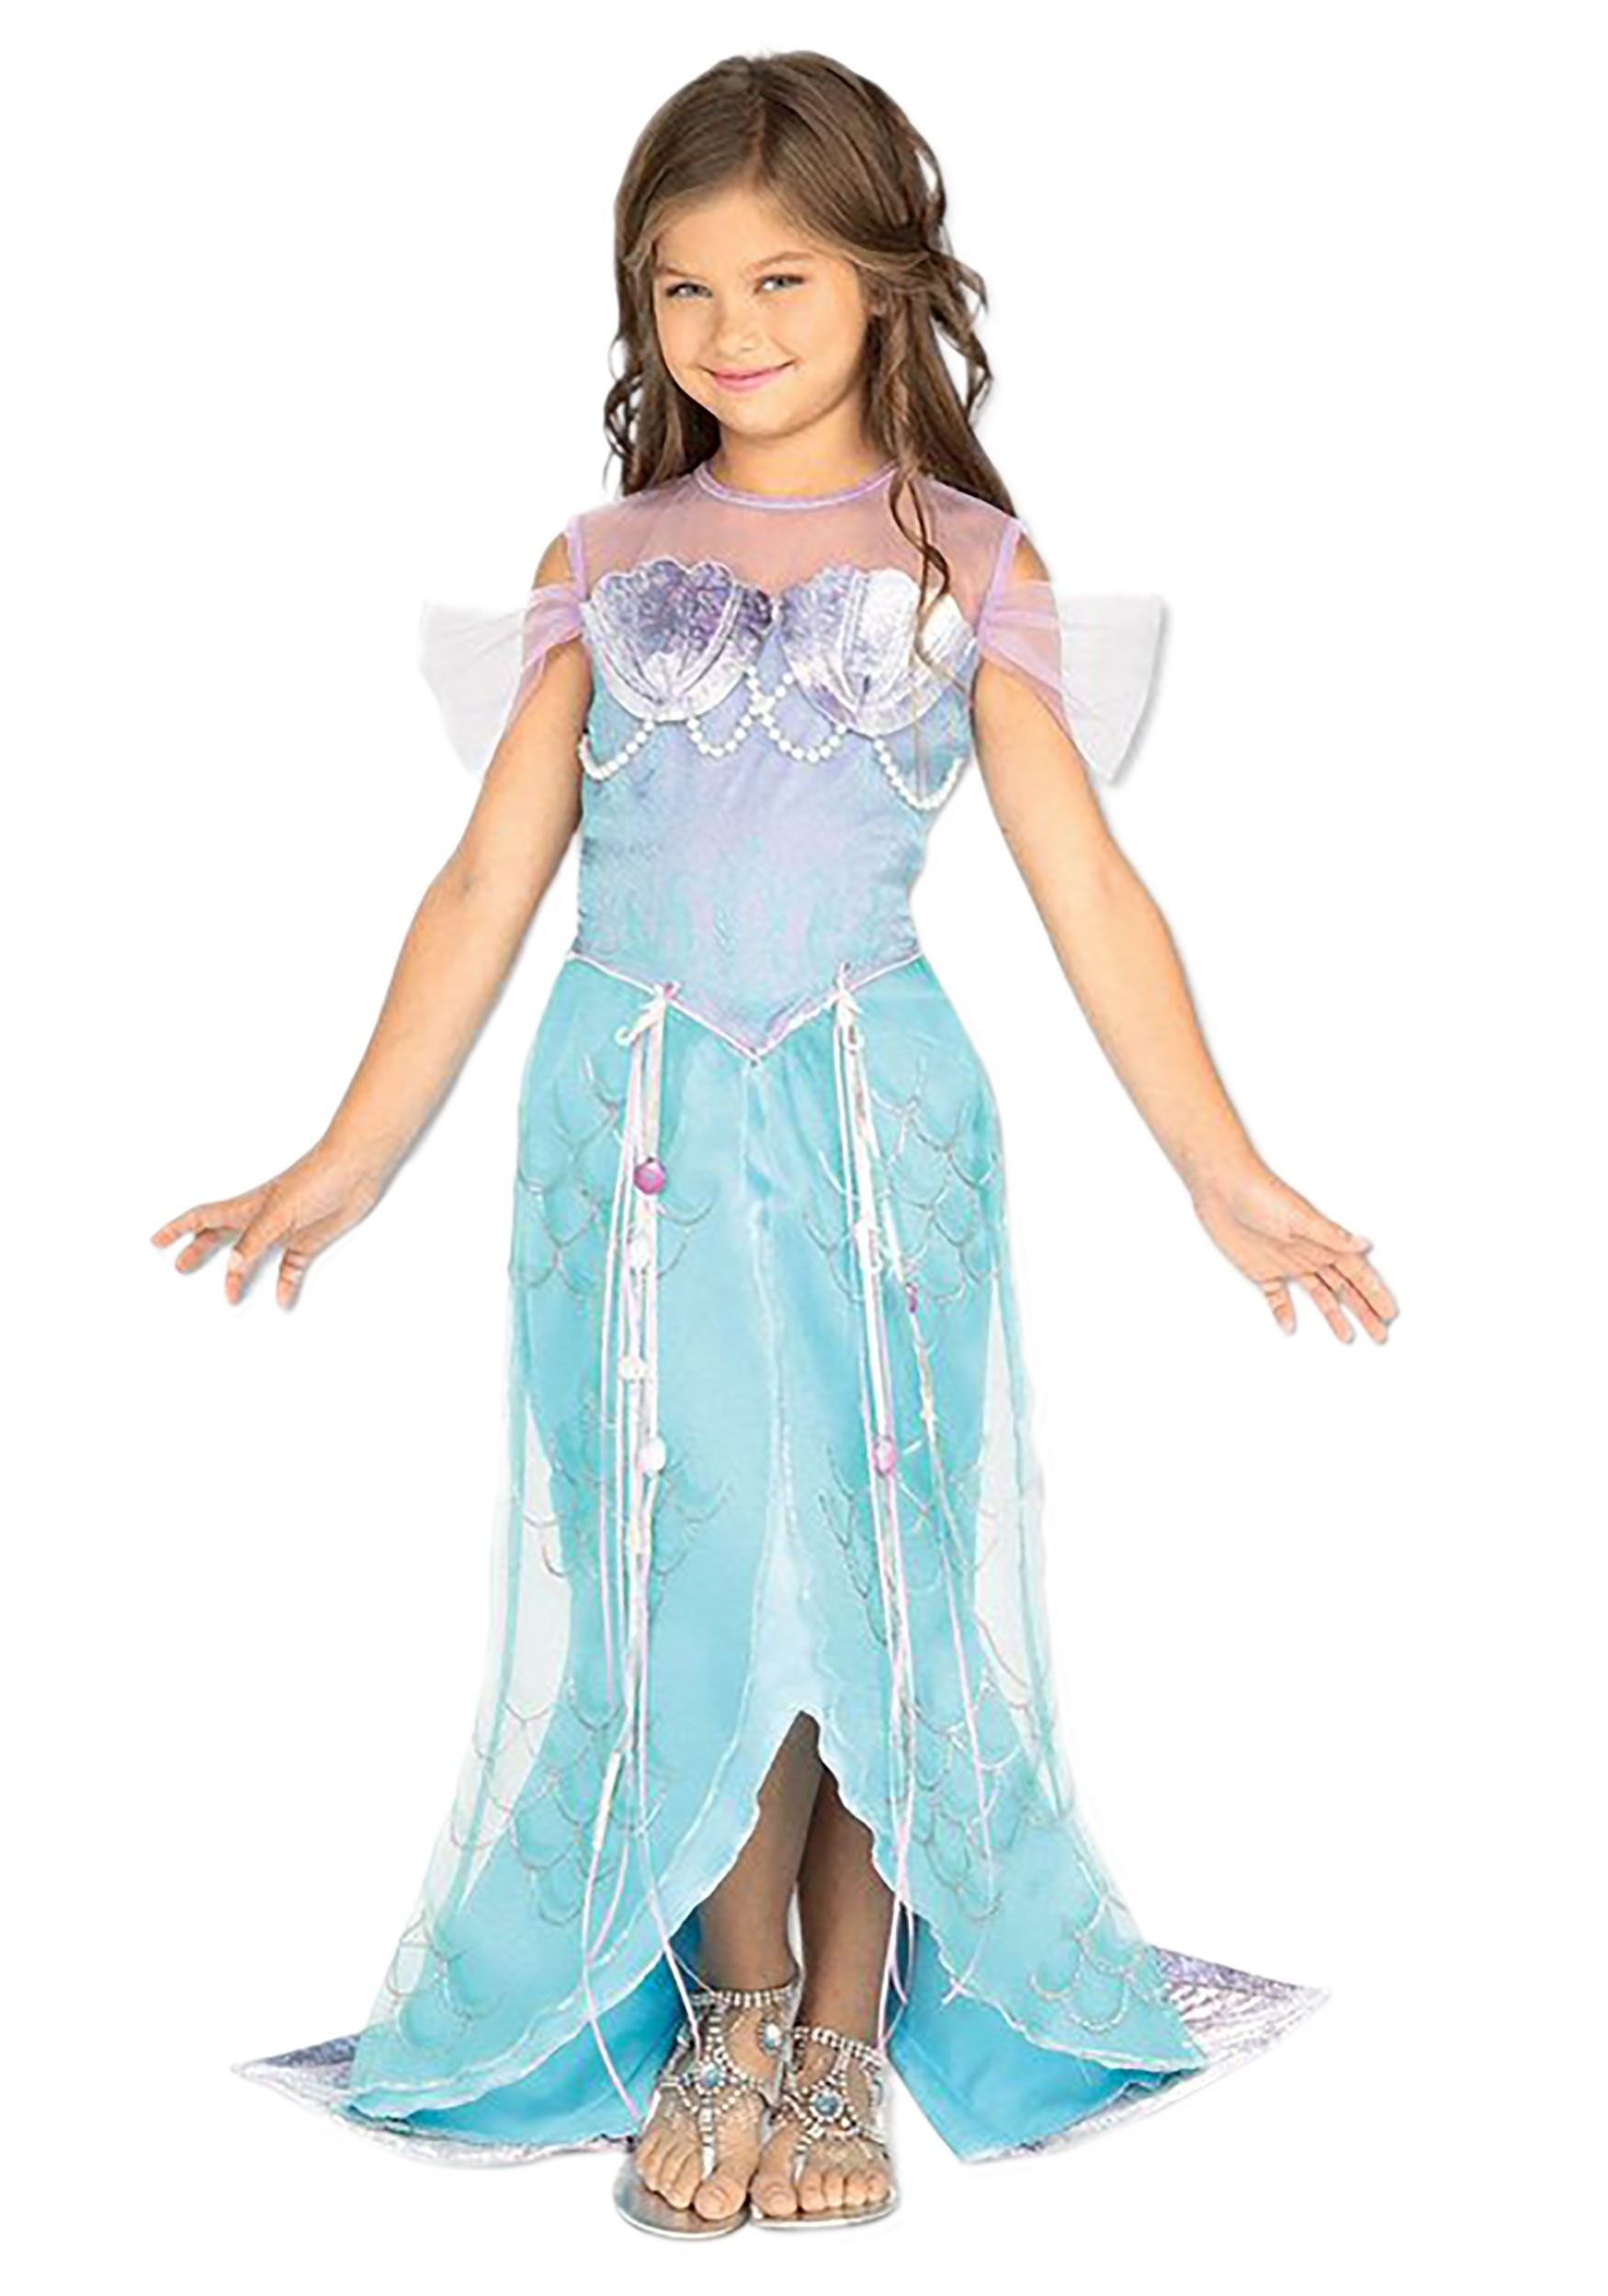 Child Mermaid Princess Costume  sc 1 st  Halloween Costumes UK & Mermaid Costumes - Adult Child Little Mermaid Costumes